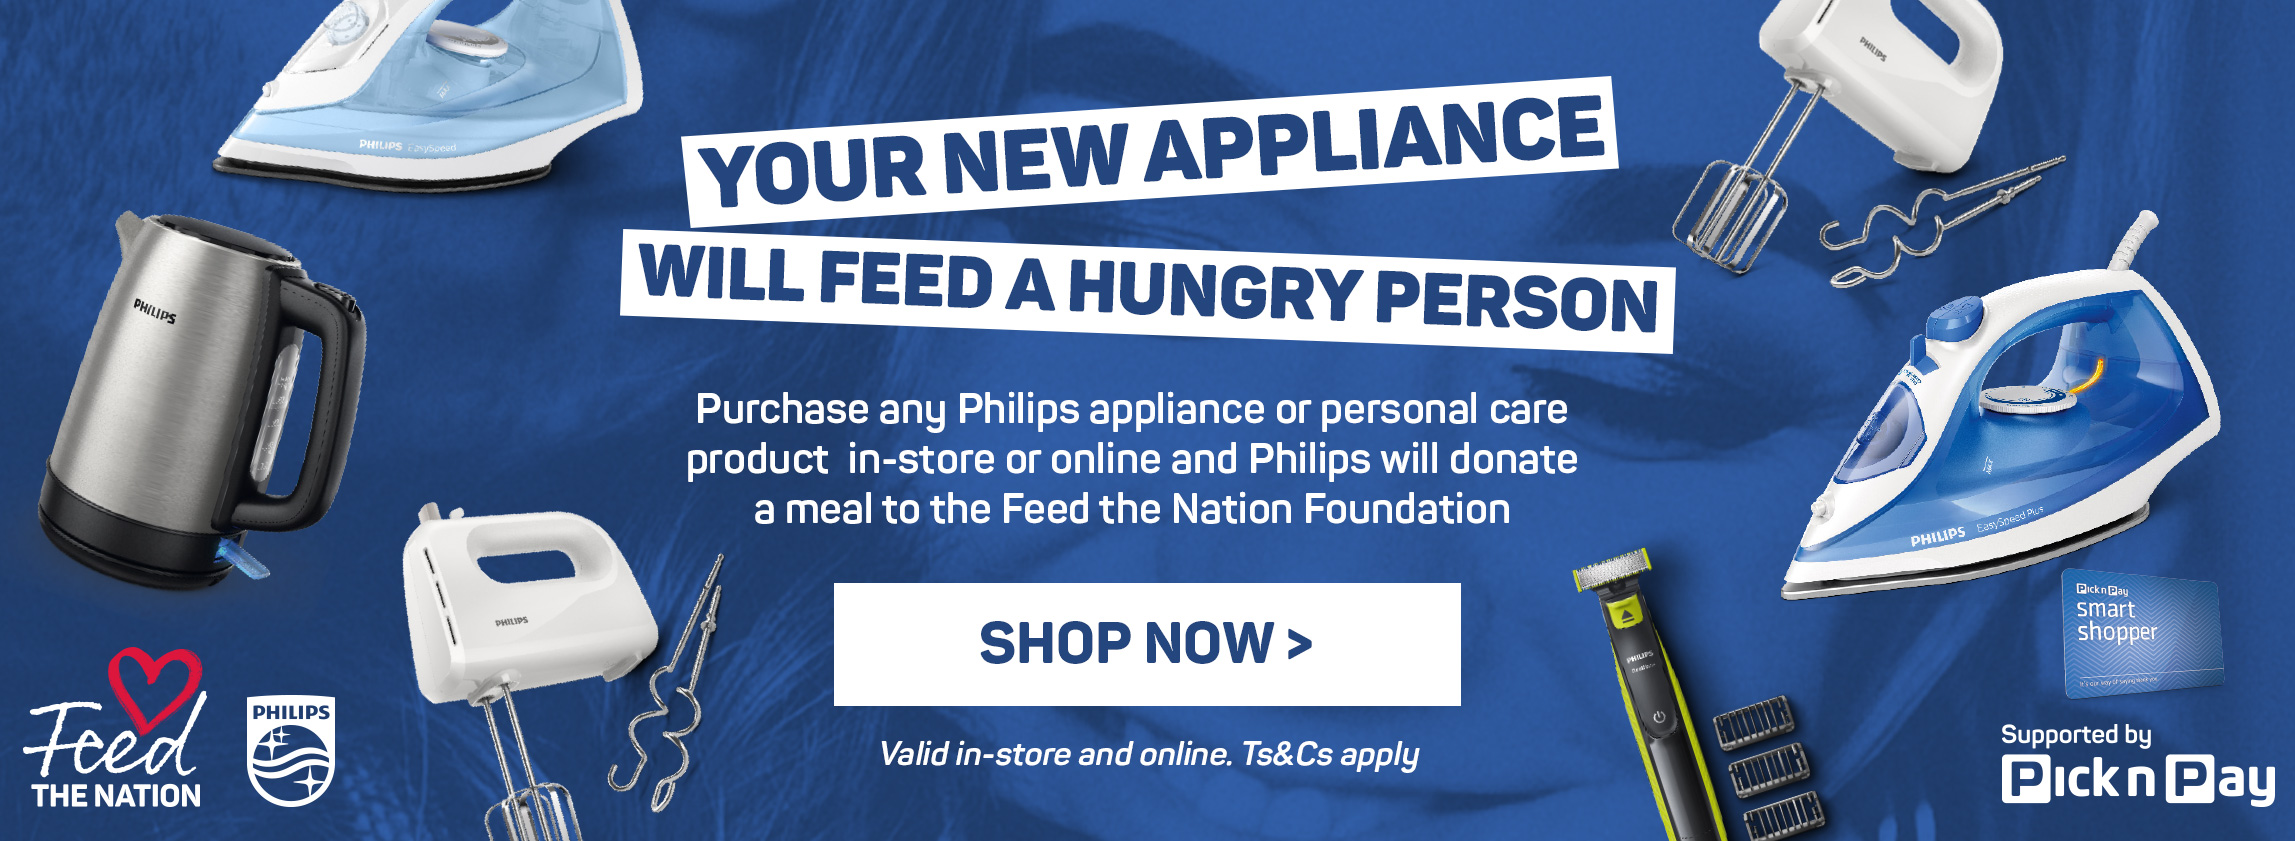 Your new appliance will feed a hungry person. Shop now